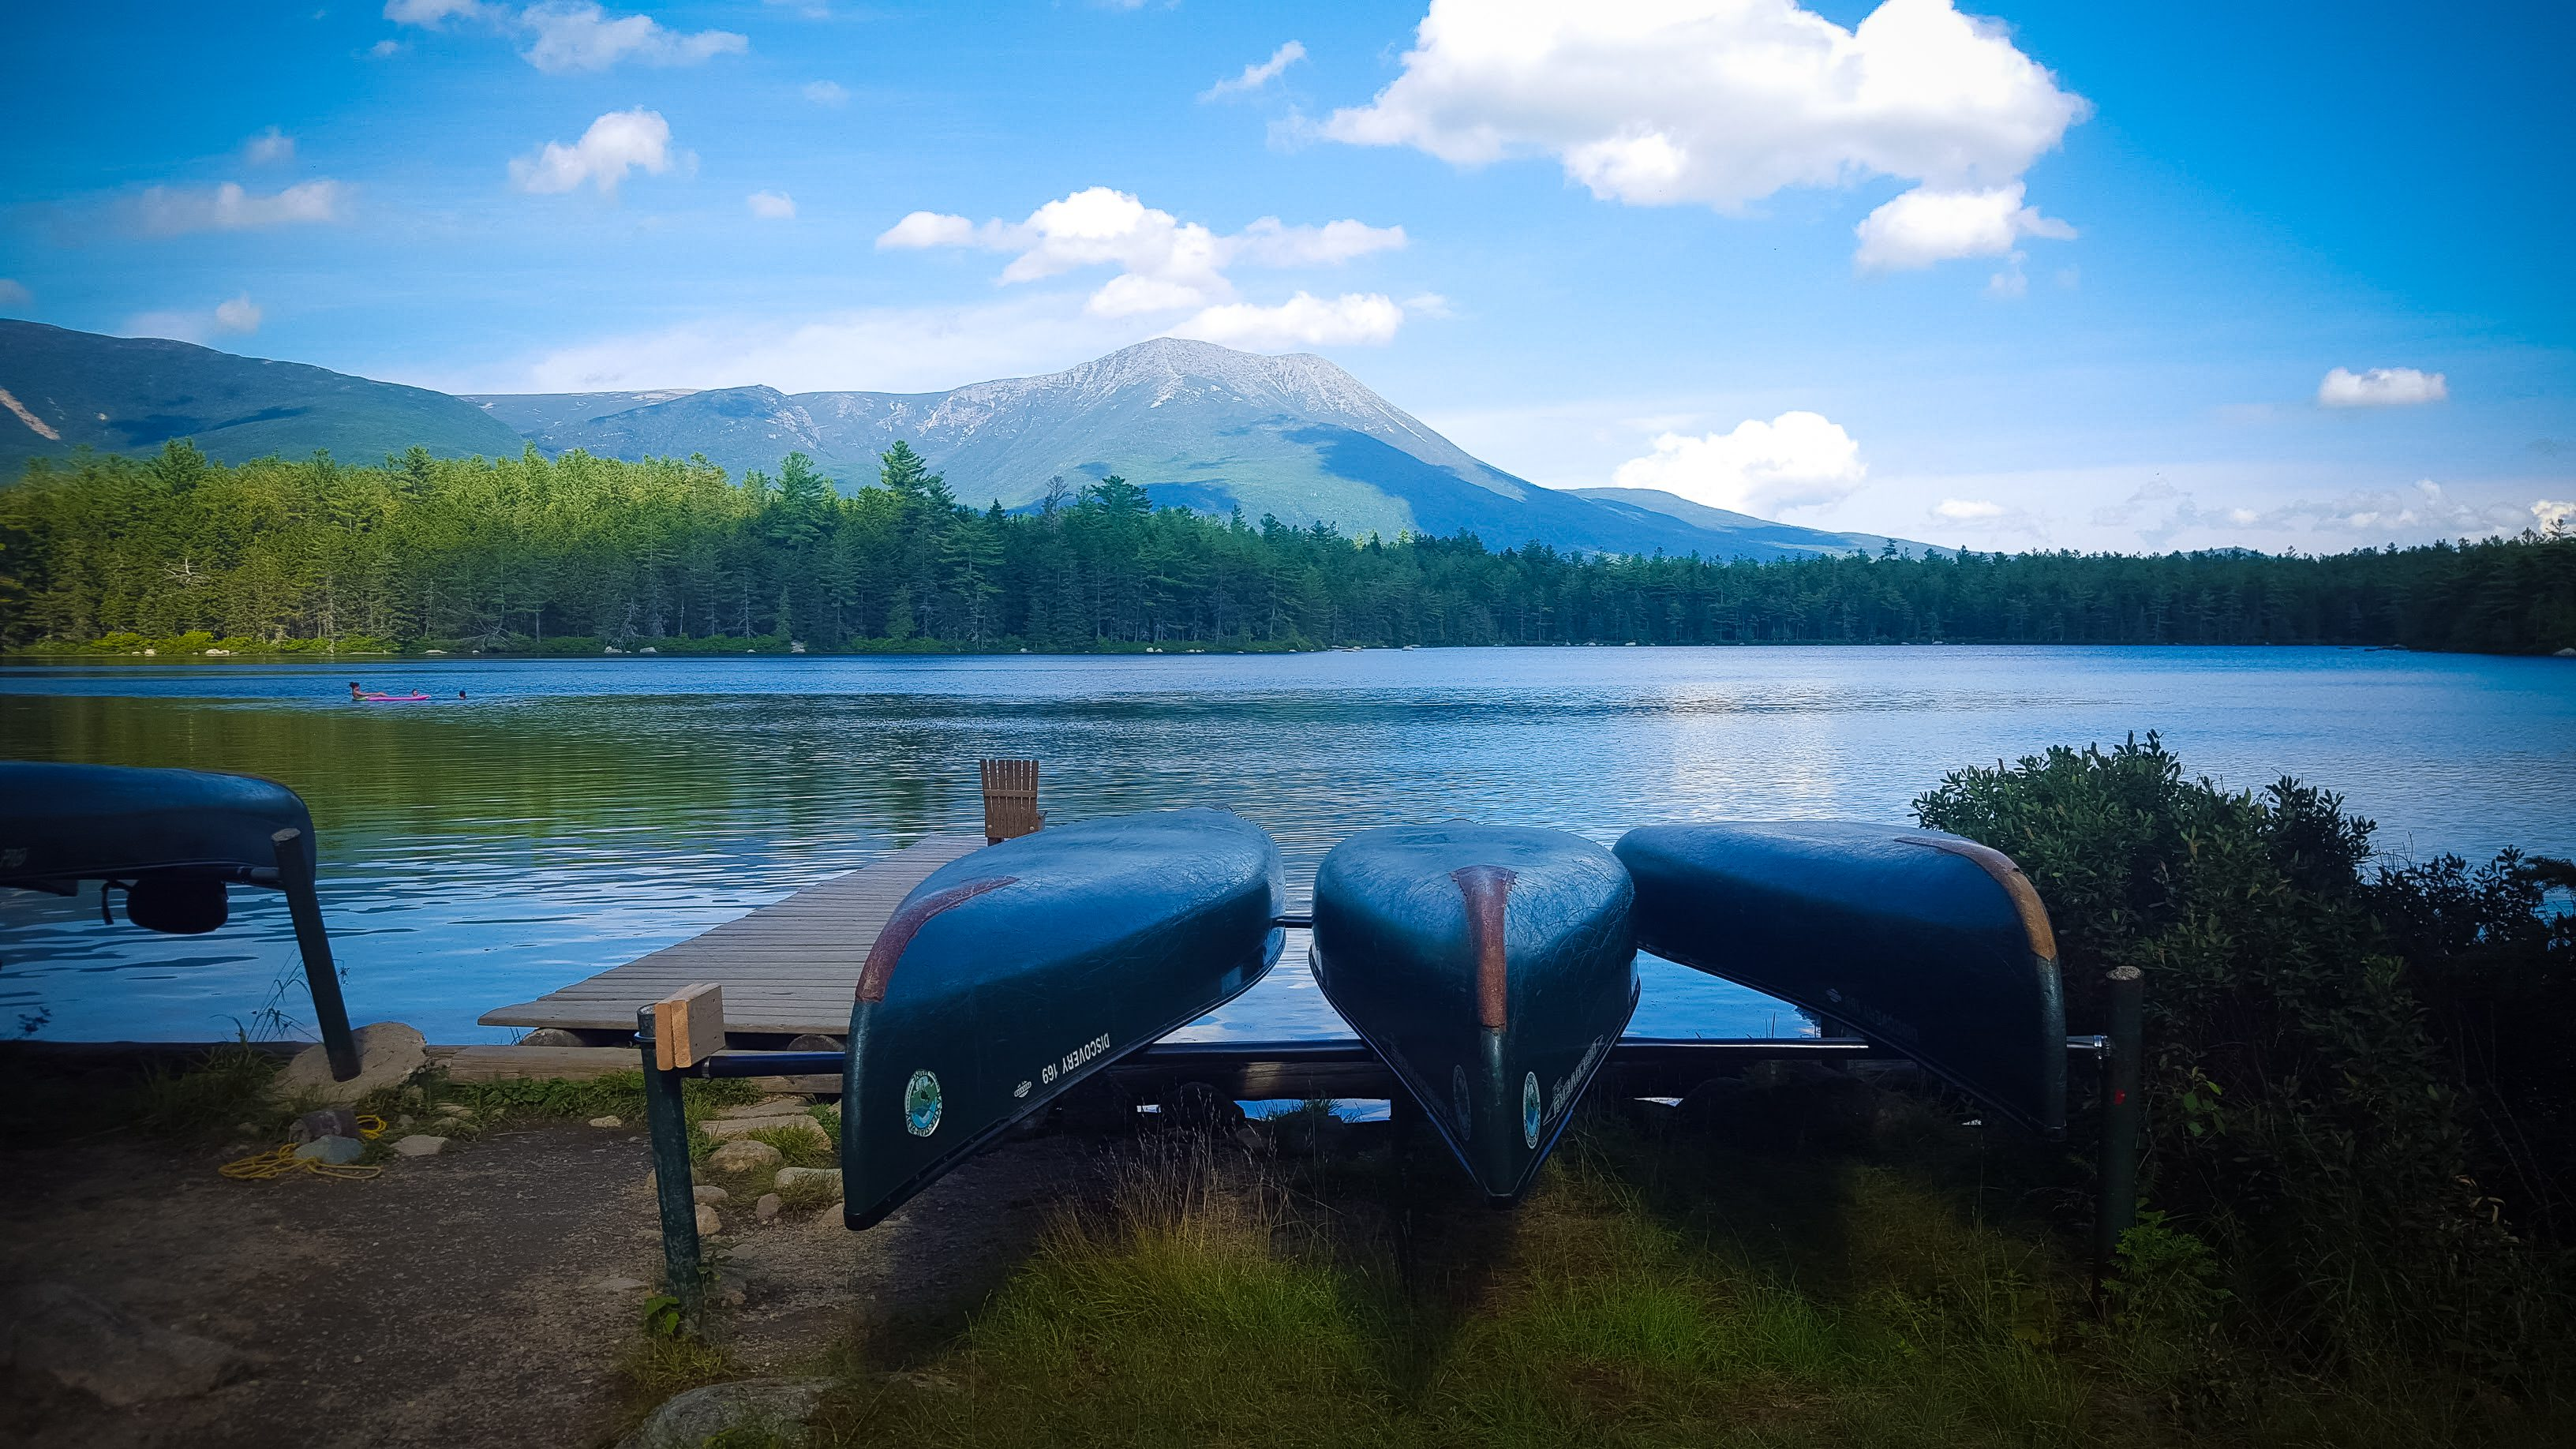 Canoeing on Daicey Pond in Baxter State Park